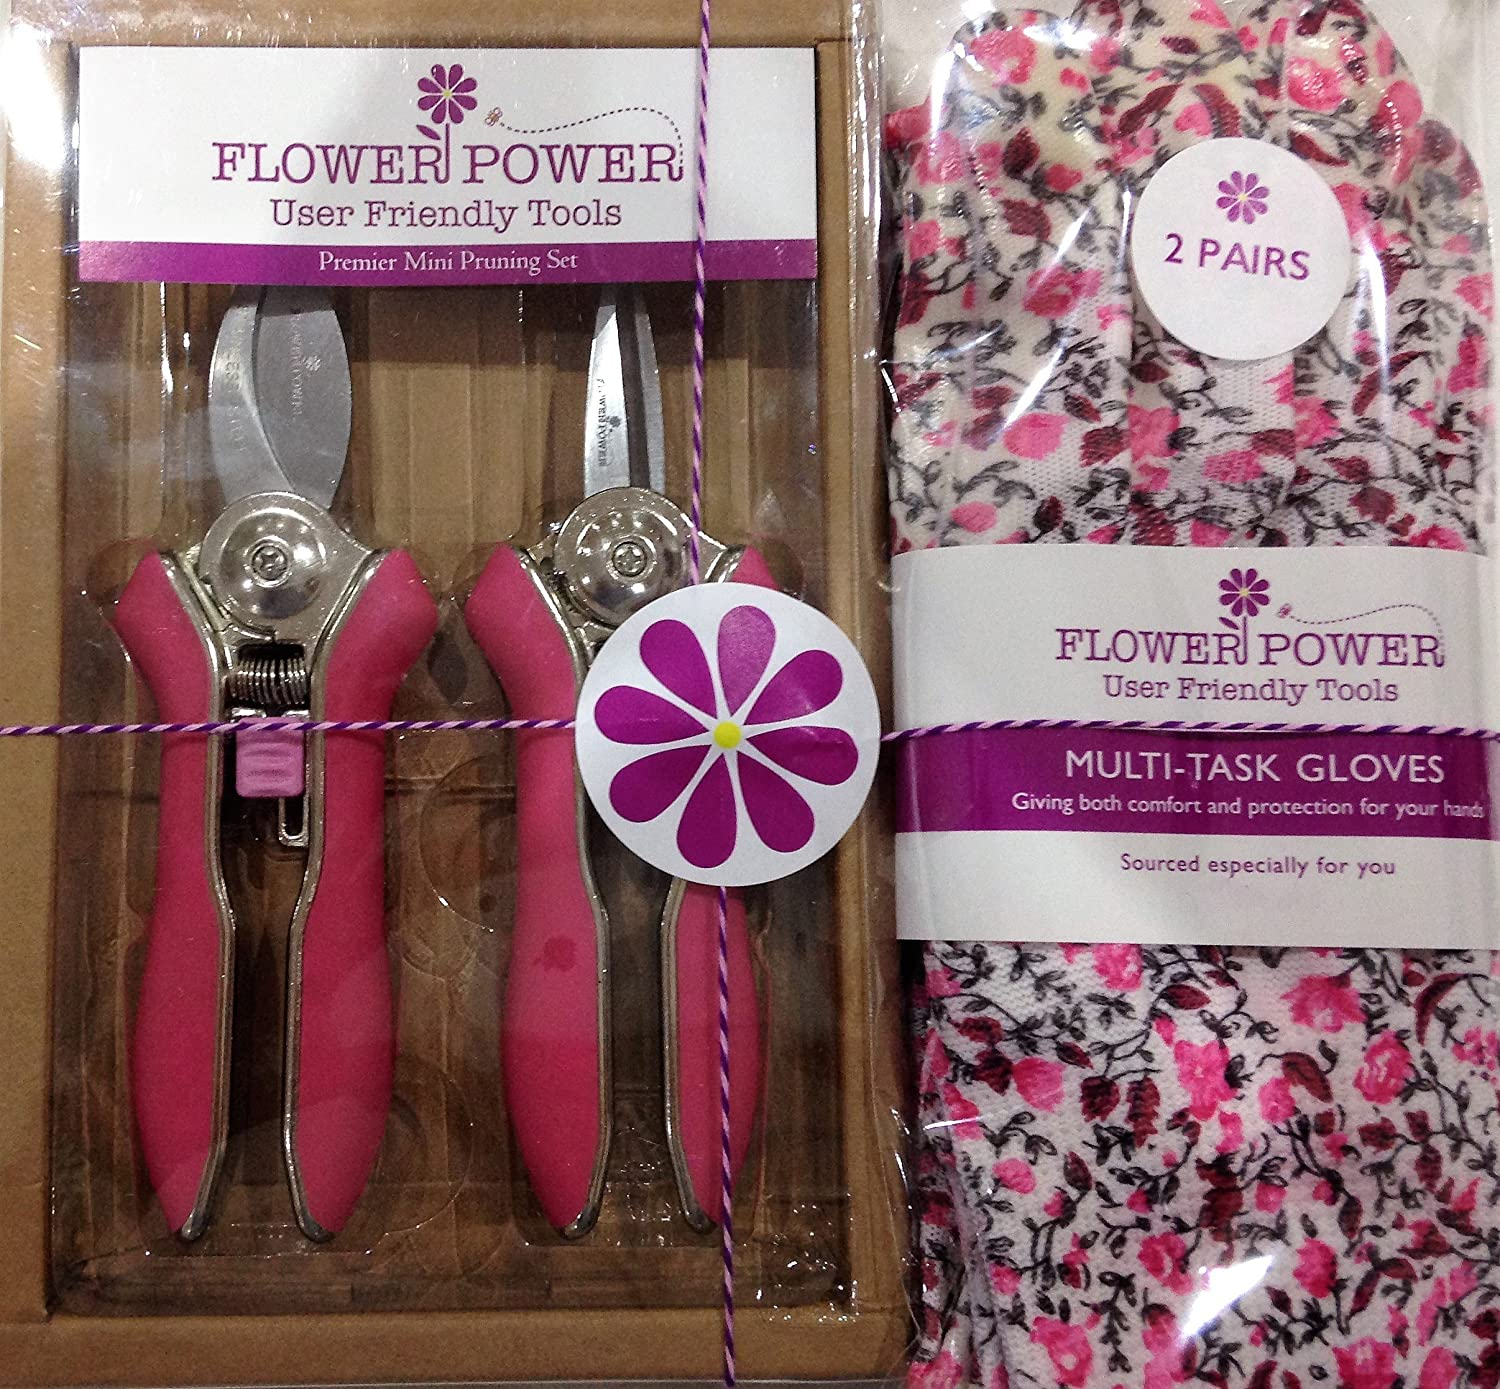 2 Pairs Ladies Gardening Gloves (Candy Pink Floral) and Mini Pruner Garden Secateurs Set. Bypass and Trimmer ladies garden shears with Lightweight gloves suitable for garden and household tasks.The Best Womens Gardening Gift. On Sale Buy NOW! Formosan Uni